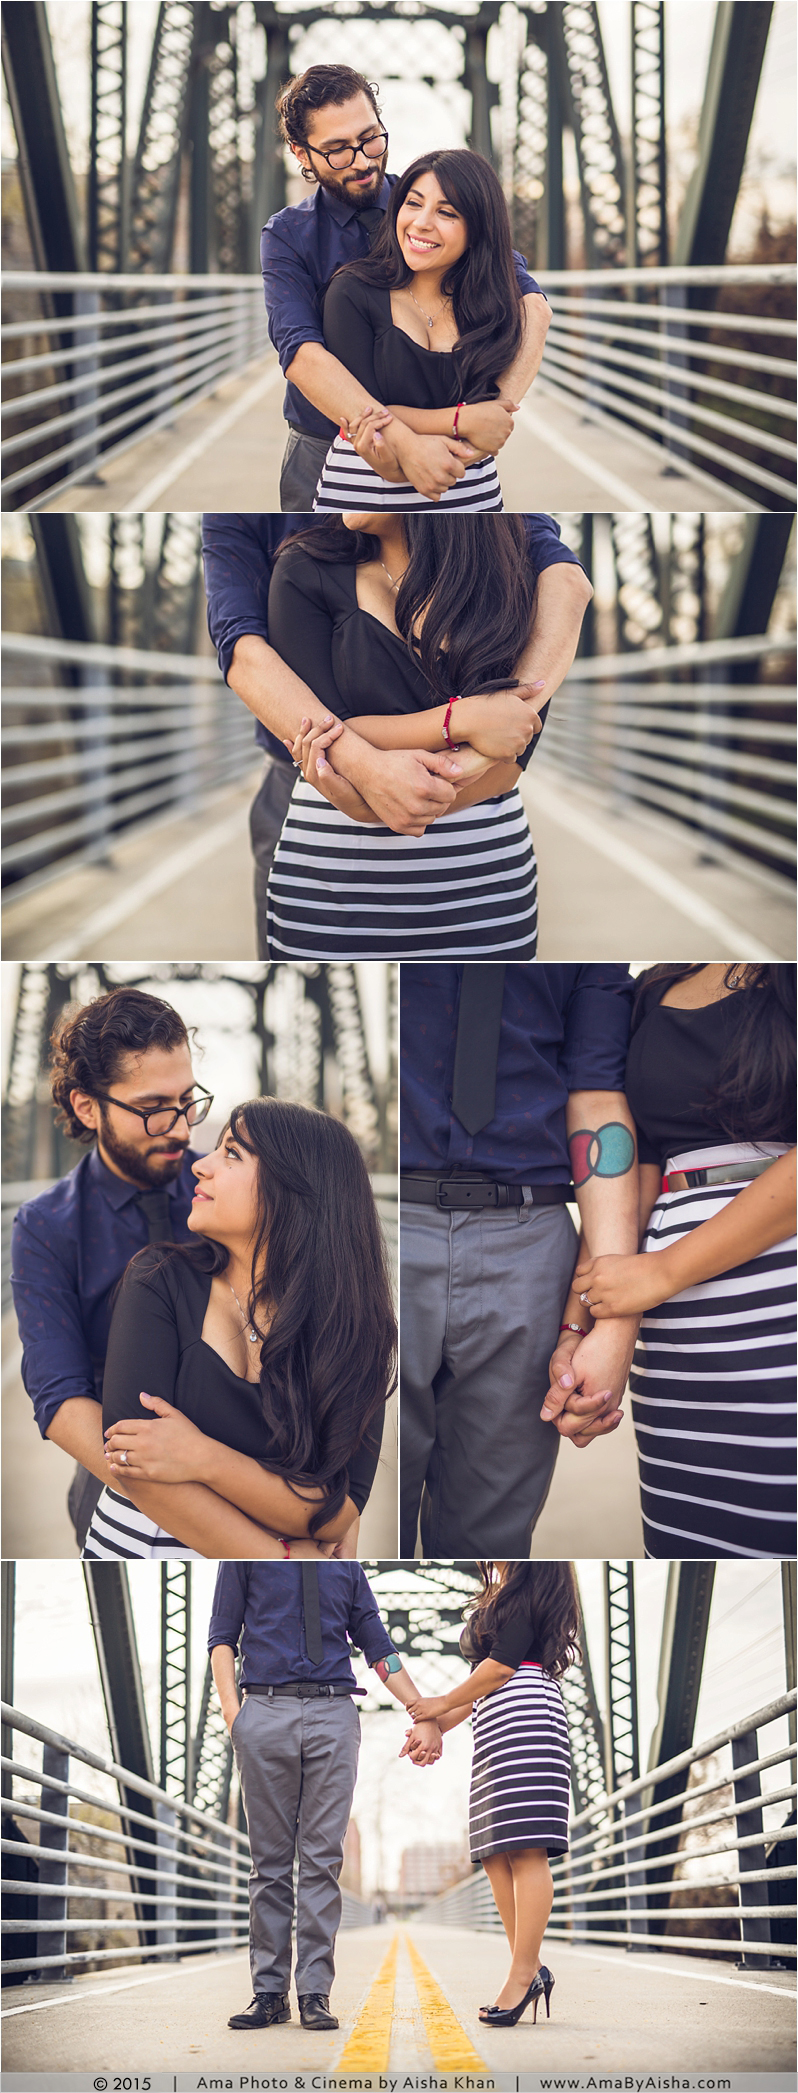 Engagement Session from www.AmaByAisha.com. Love the lines in the photos!